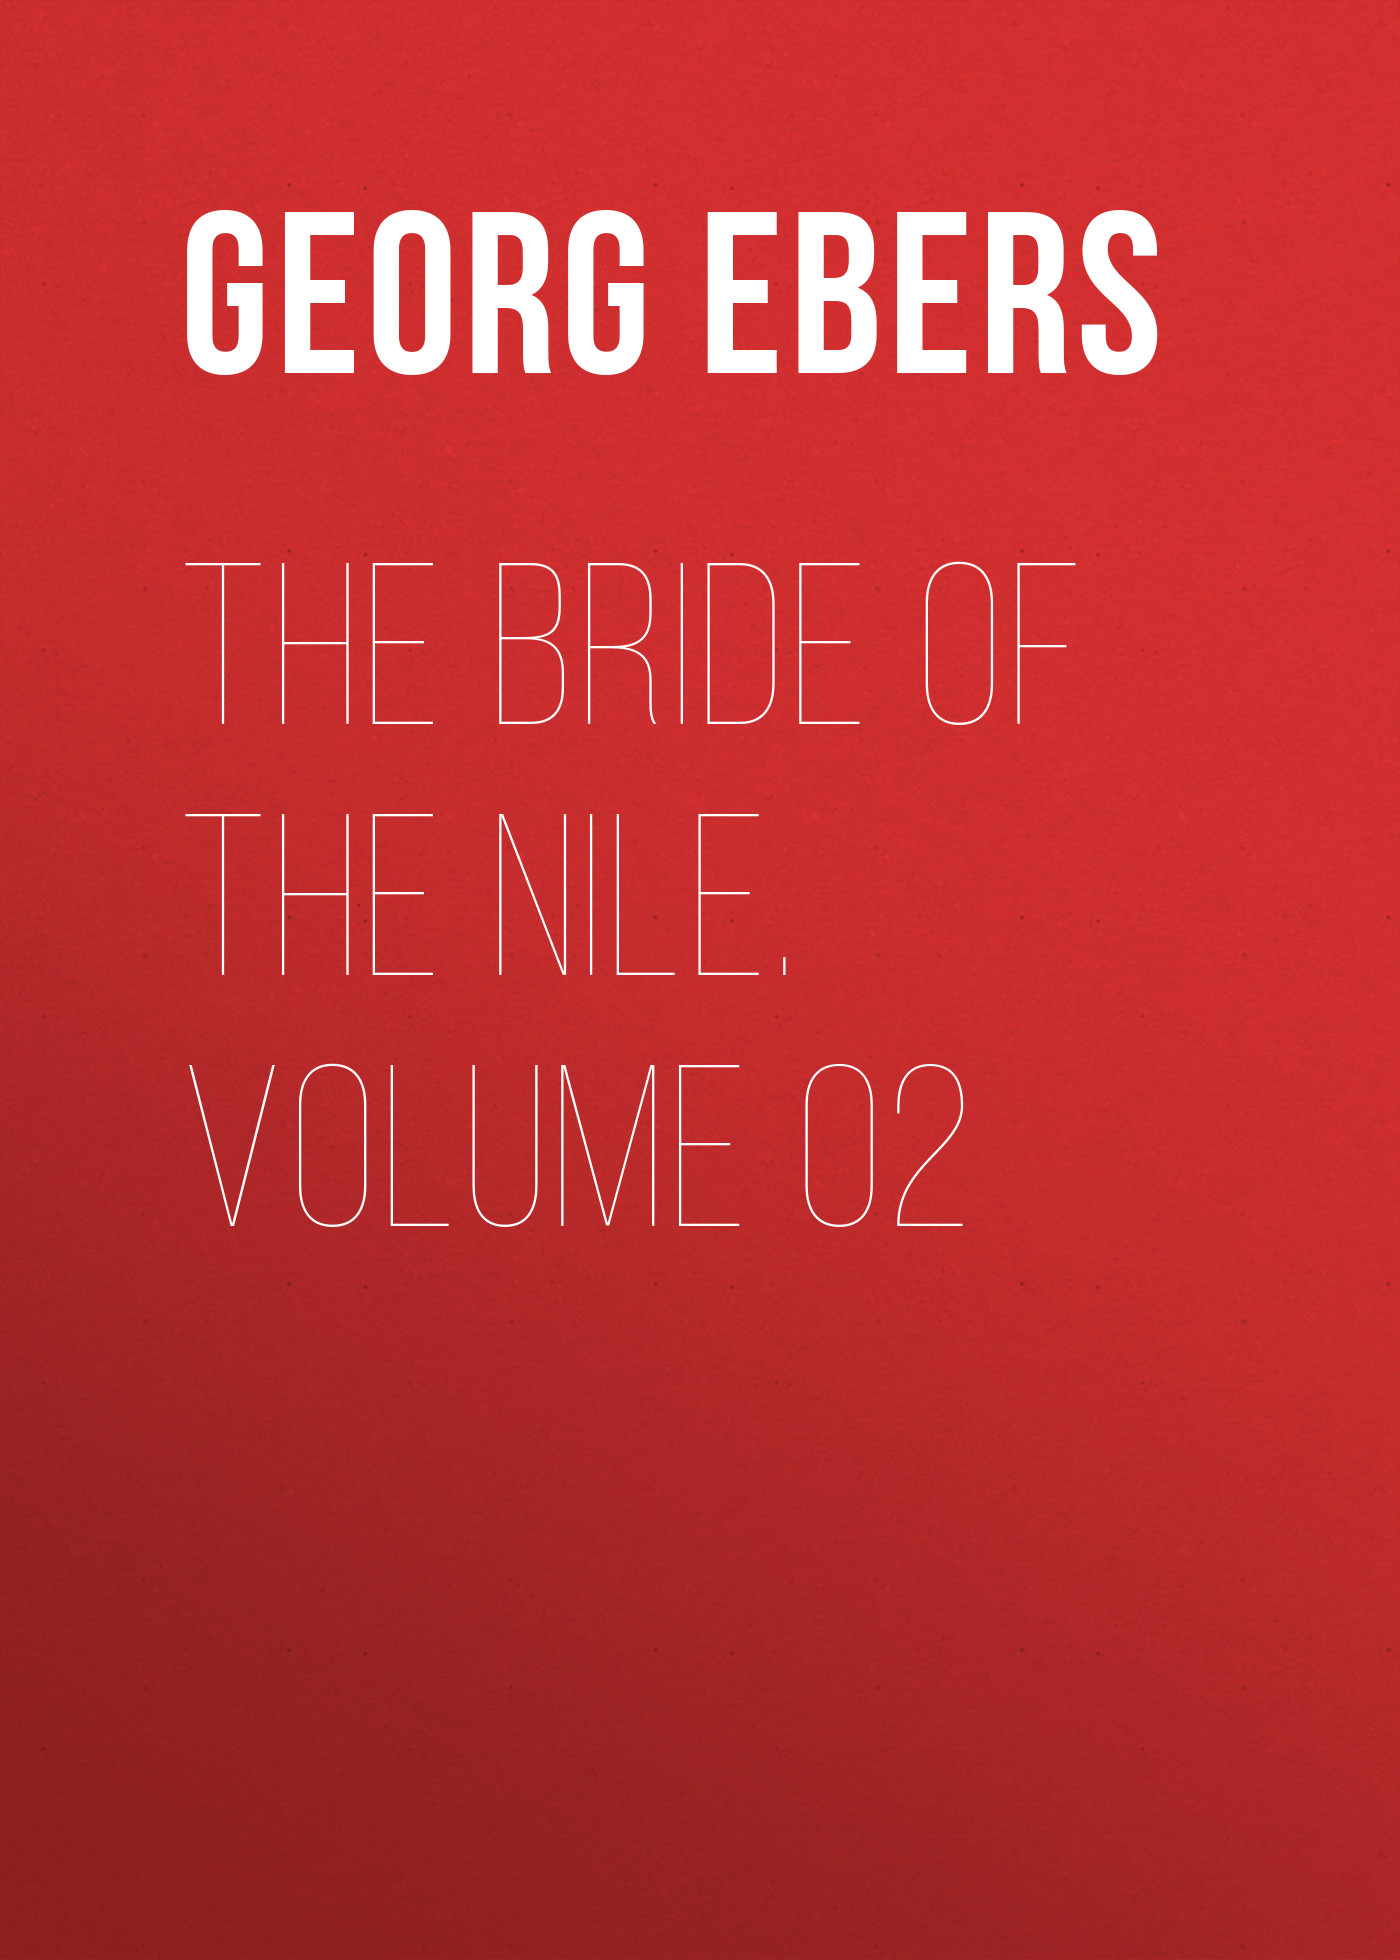 Georg Ebers The Bride of the Nile. Volume 02